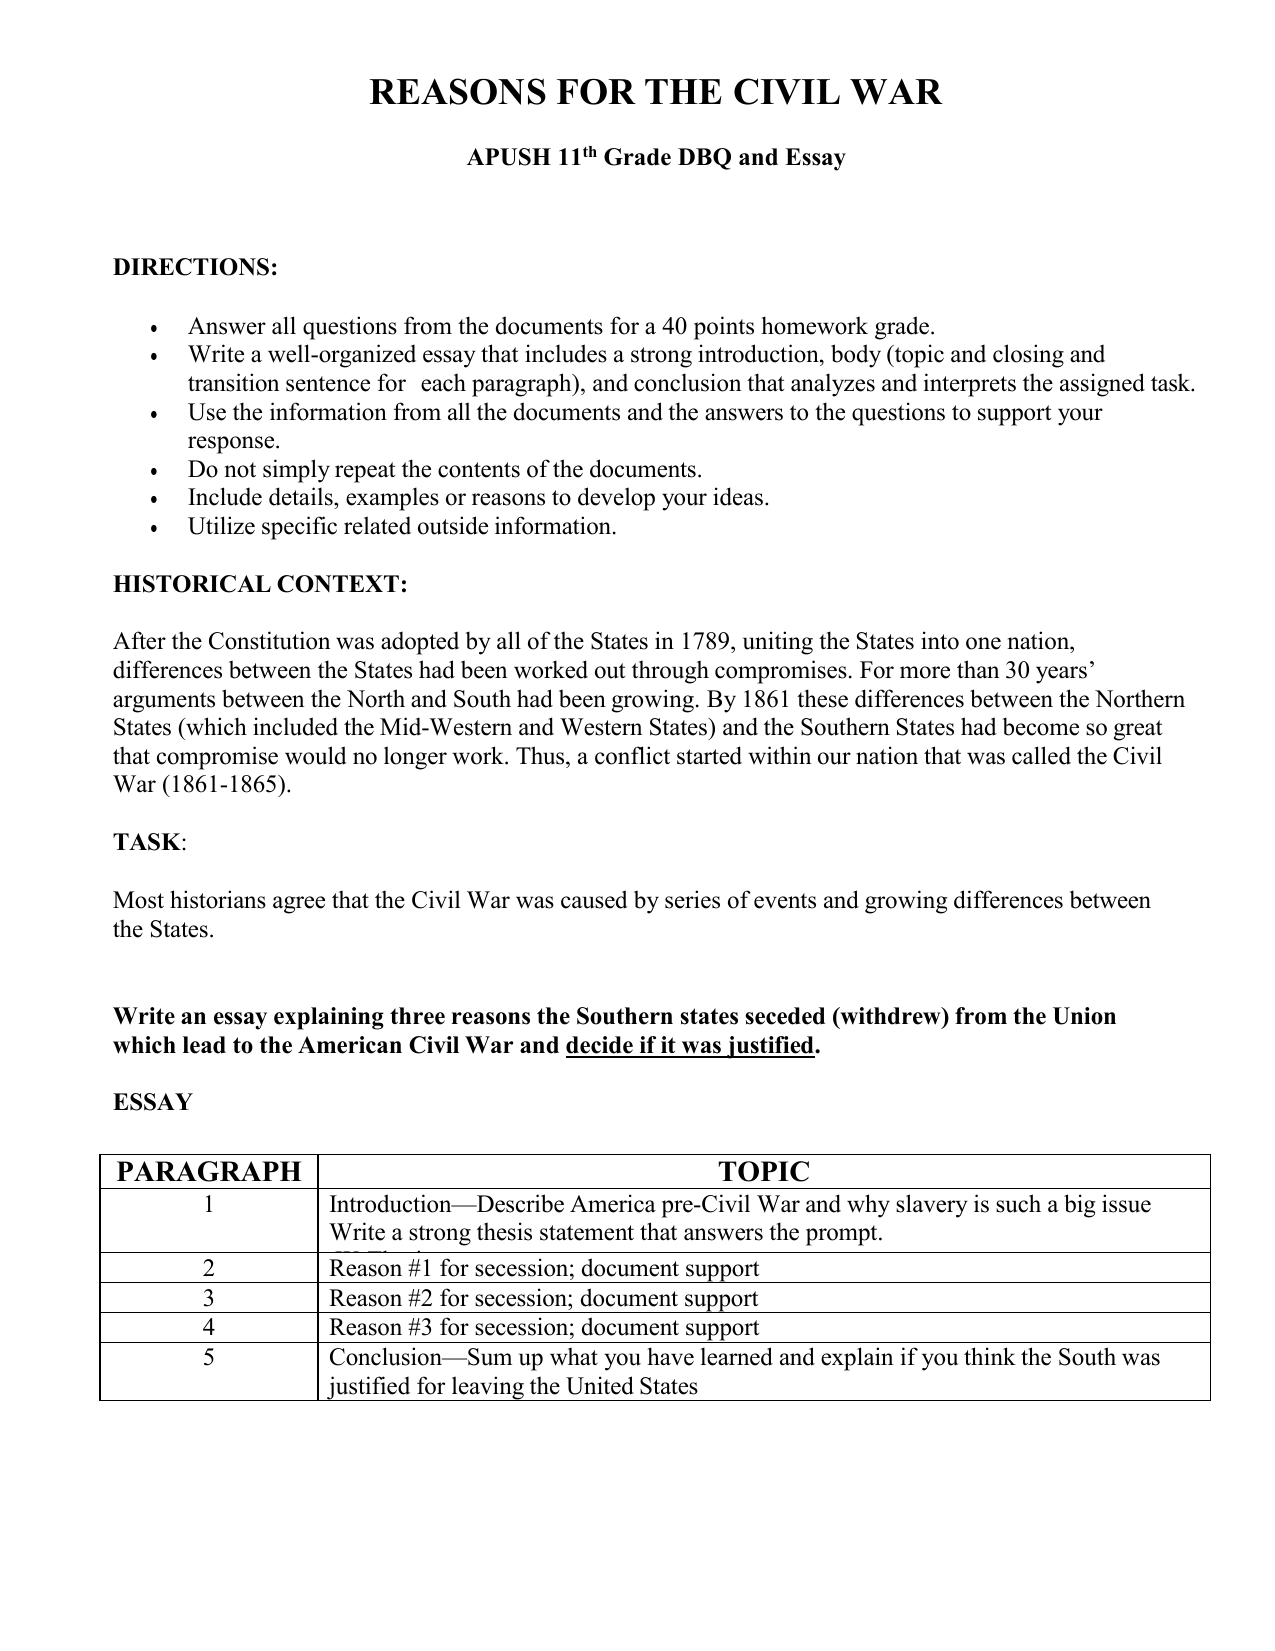 Outline For A Descriptive Essay  Causes Of The Civil War Essay Apush  Essay On Jane Eyre also Cause And Effect Of Smoking Essay Causes Of The Civil War Essay Apush Research Paper Academic Writing  Writing An Expository Essay